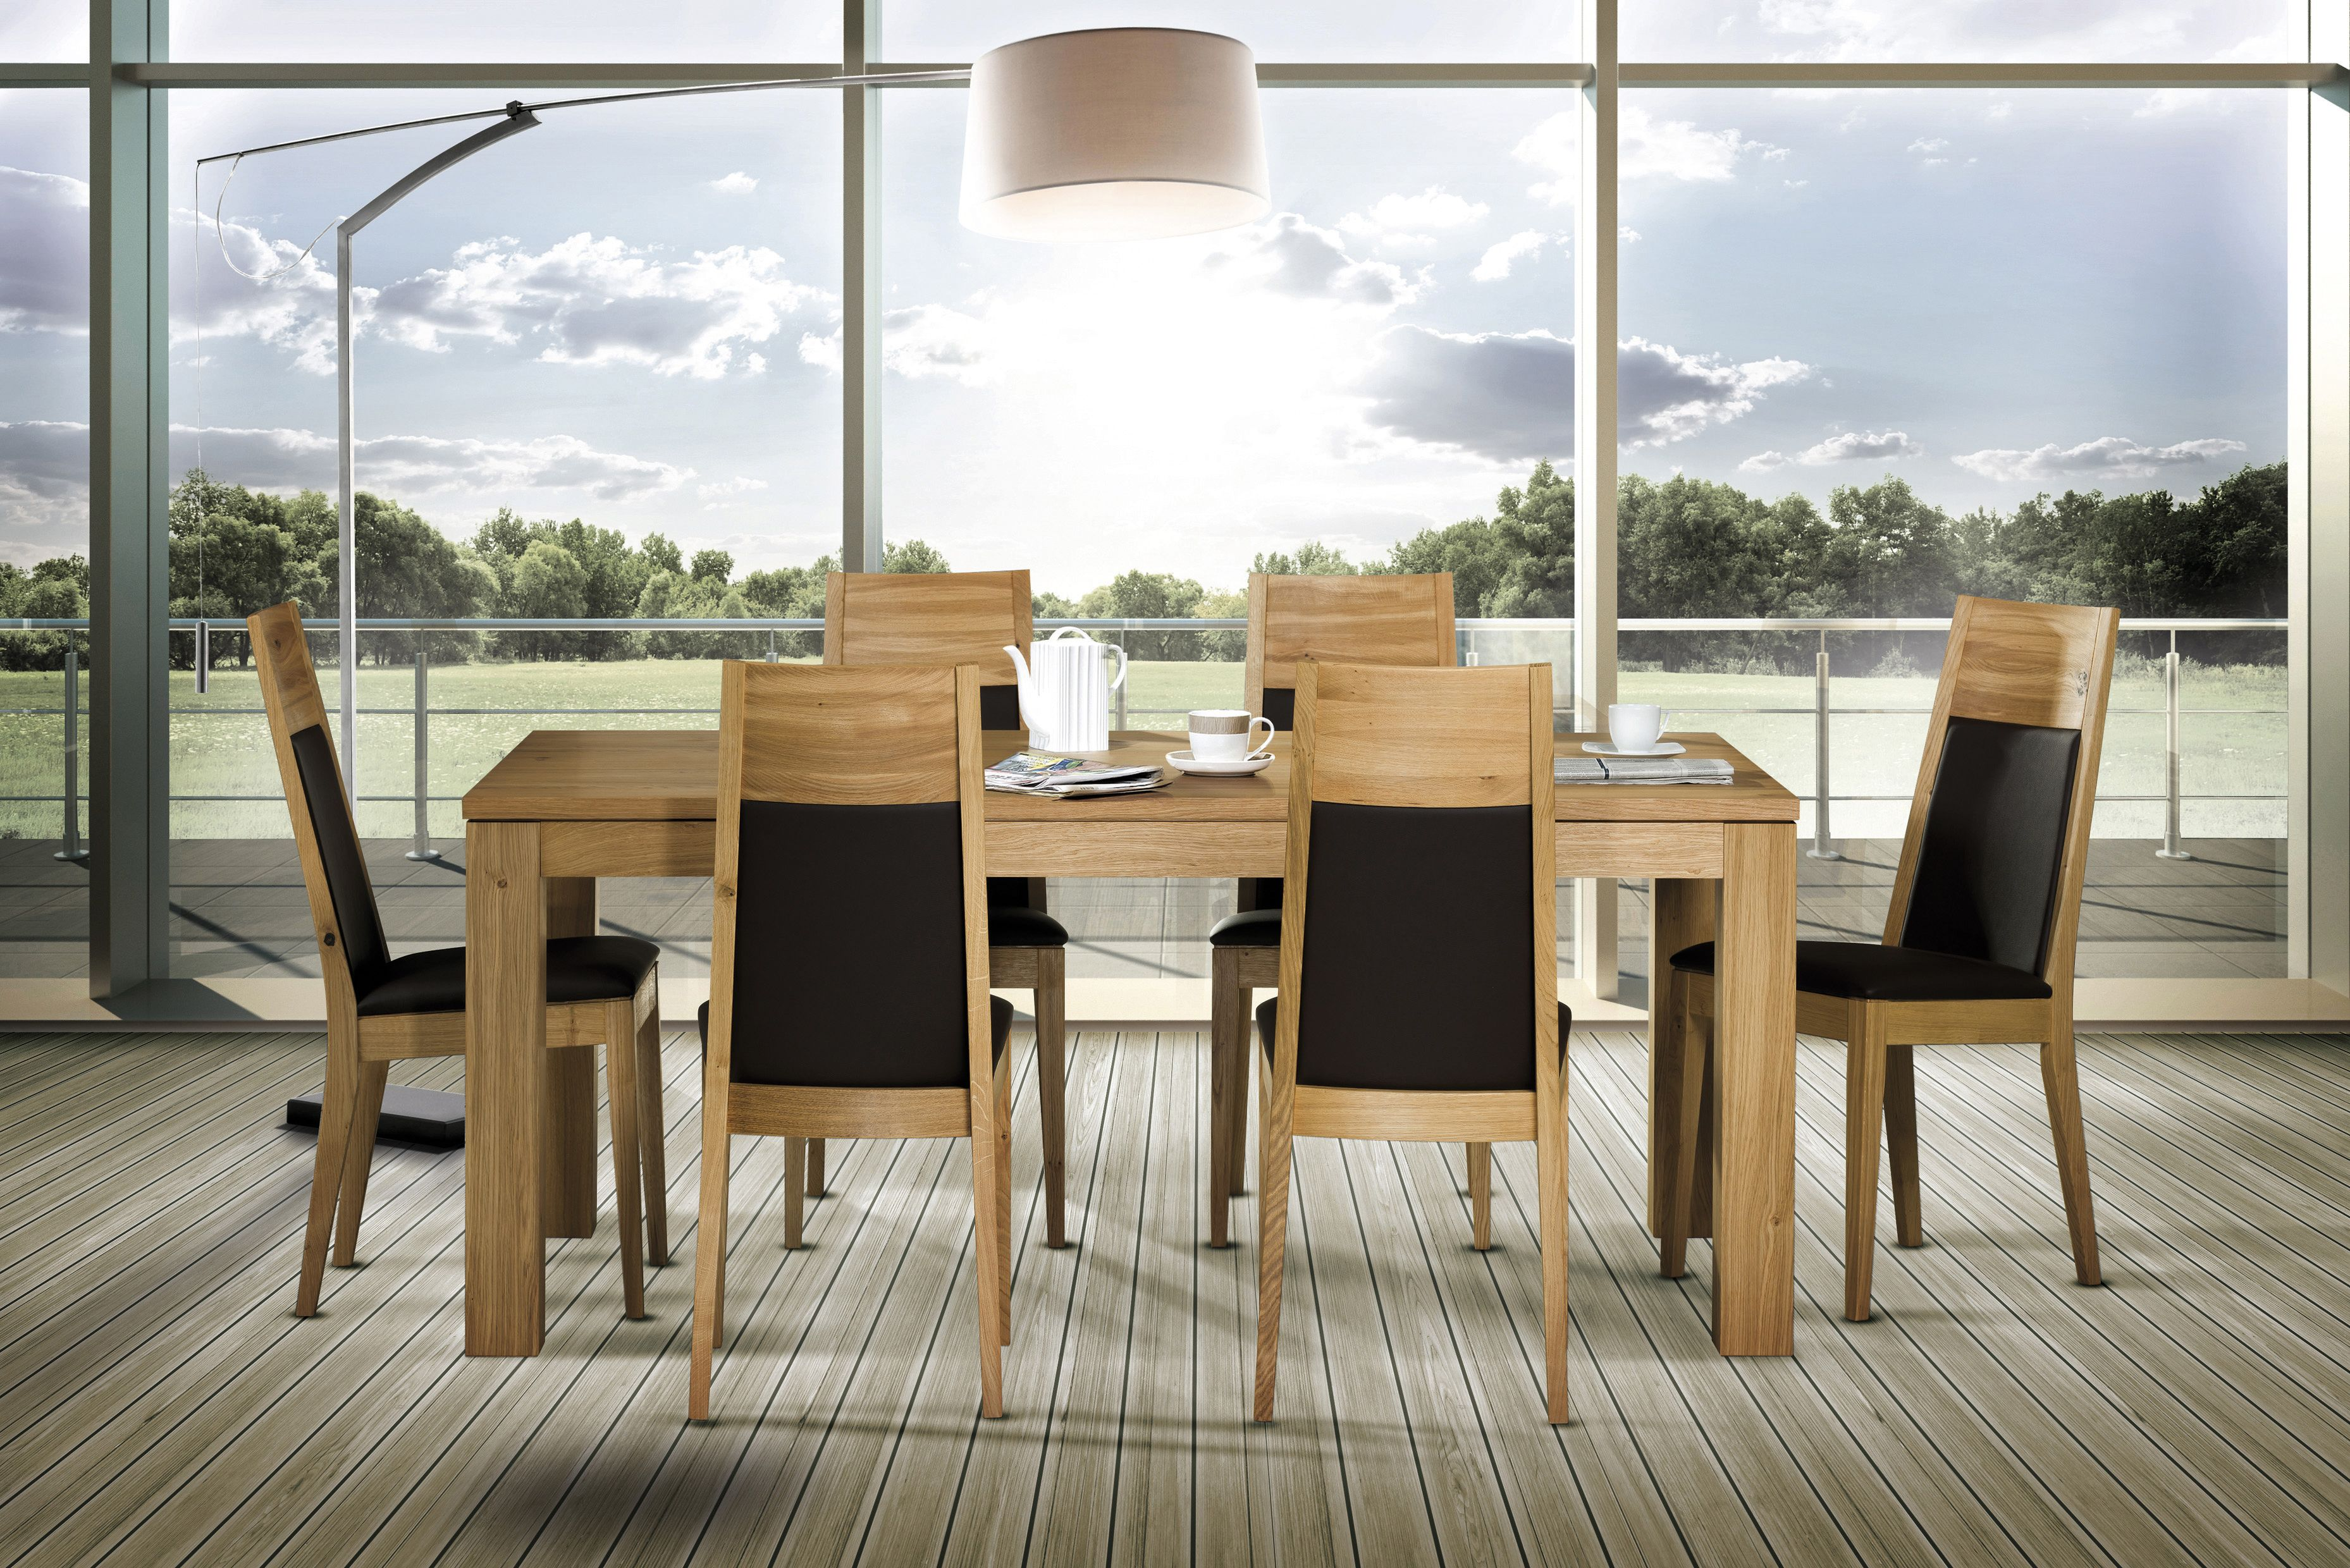 The table and chairs from Klose The